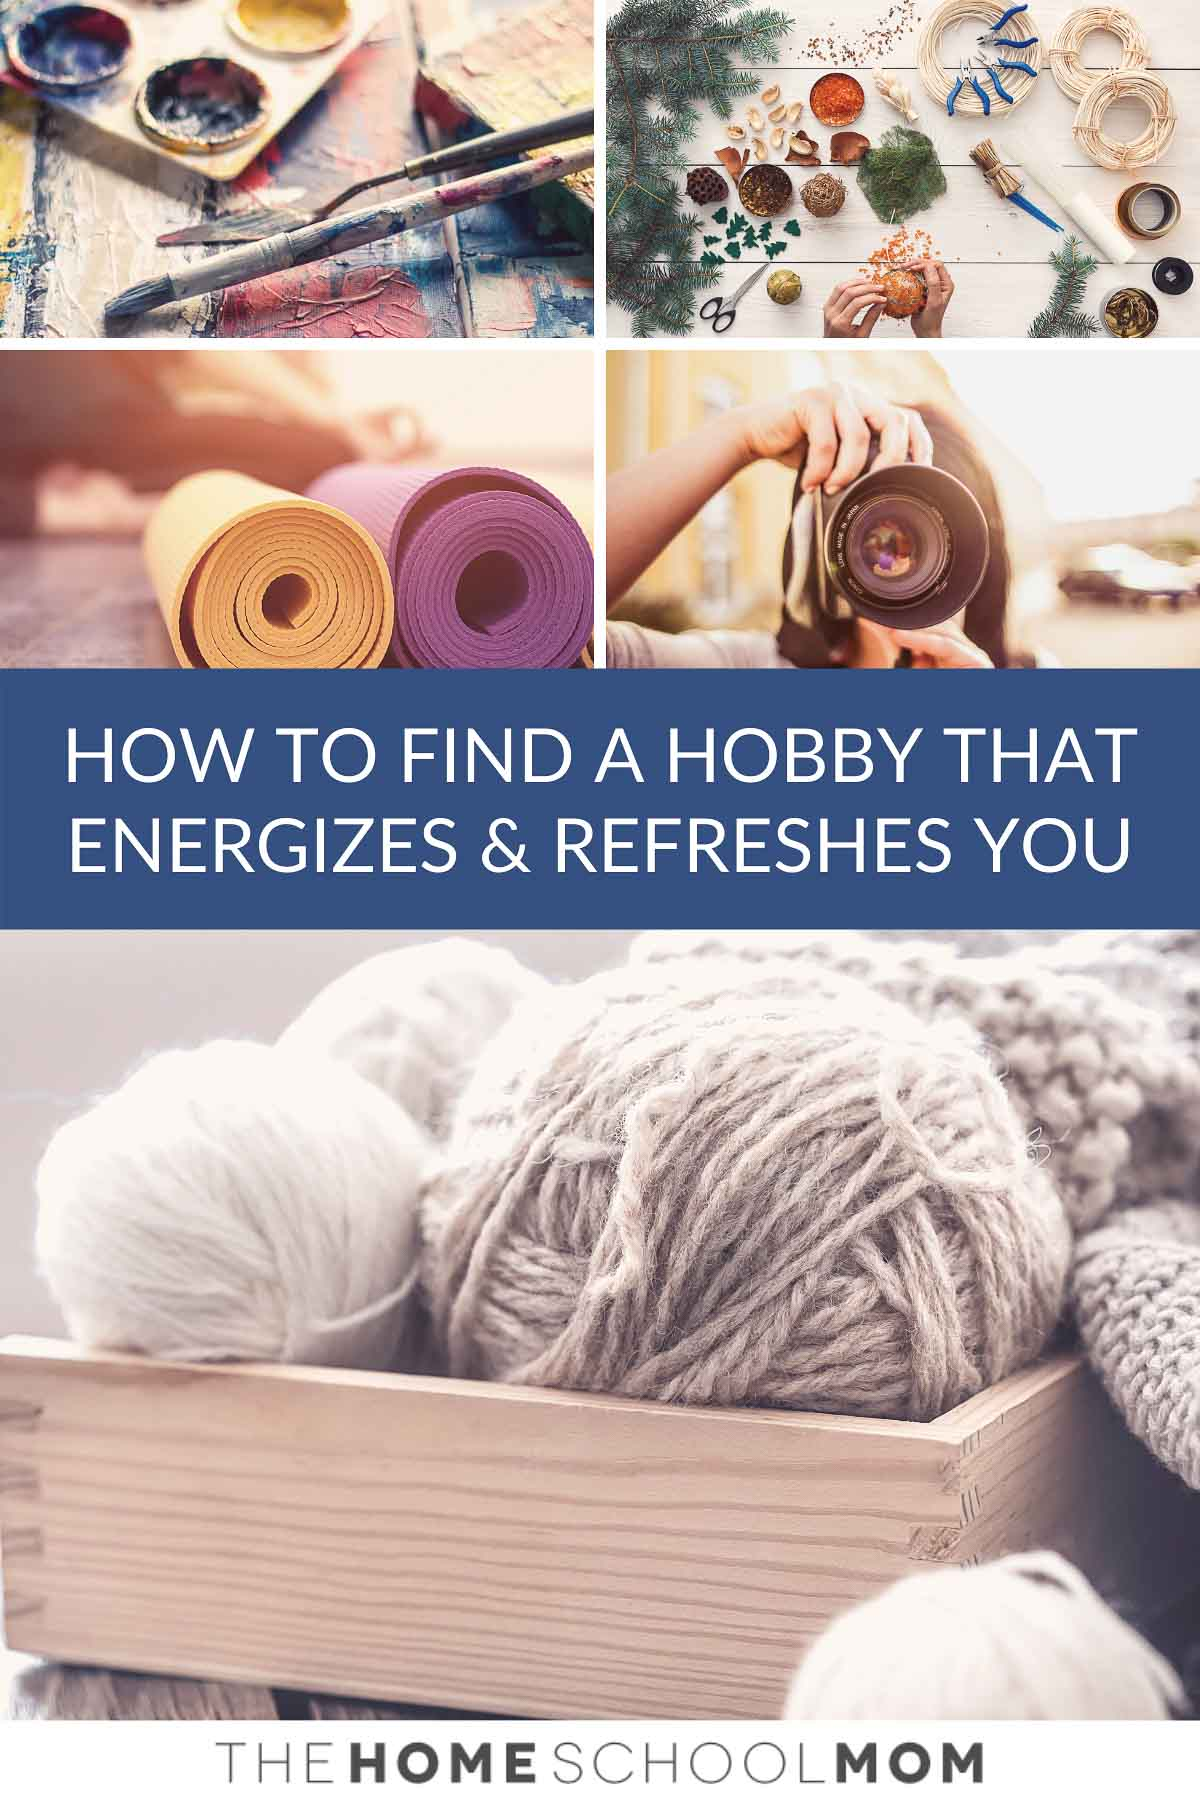 Images depicting various hobbies (knitting, painting, jewelry-making, yoga, & photography) with text How to Find a Hobby that Energizes and Refreshes You - TheHomeSchoolMom